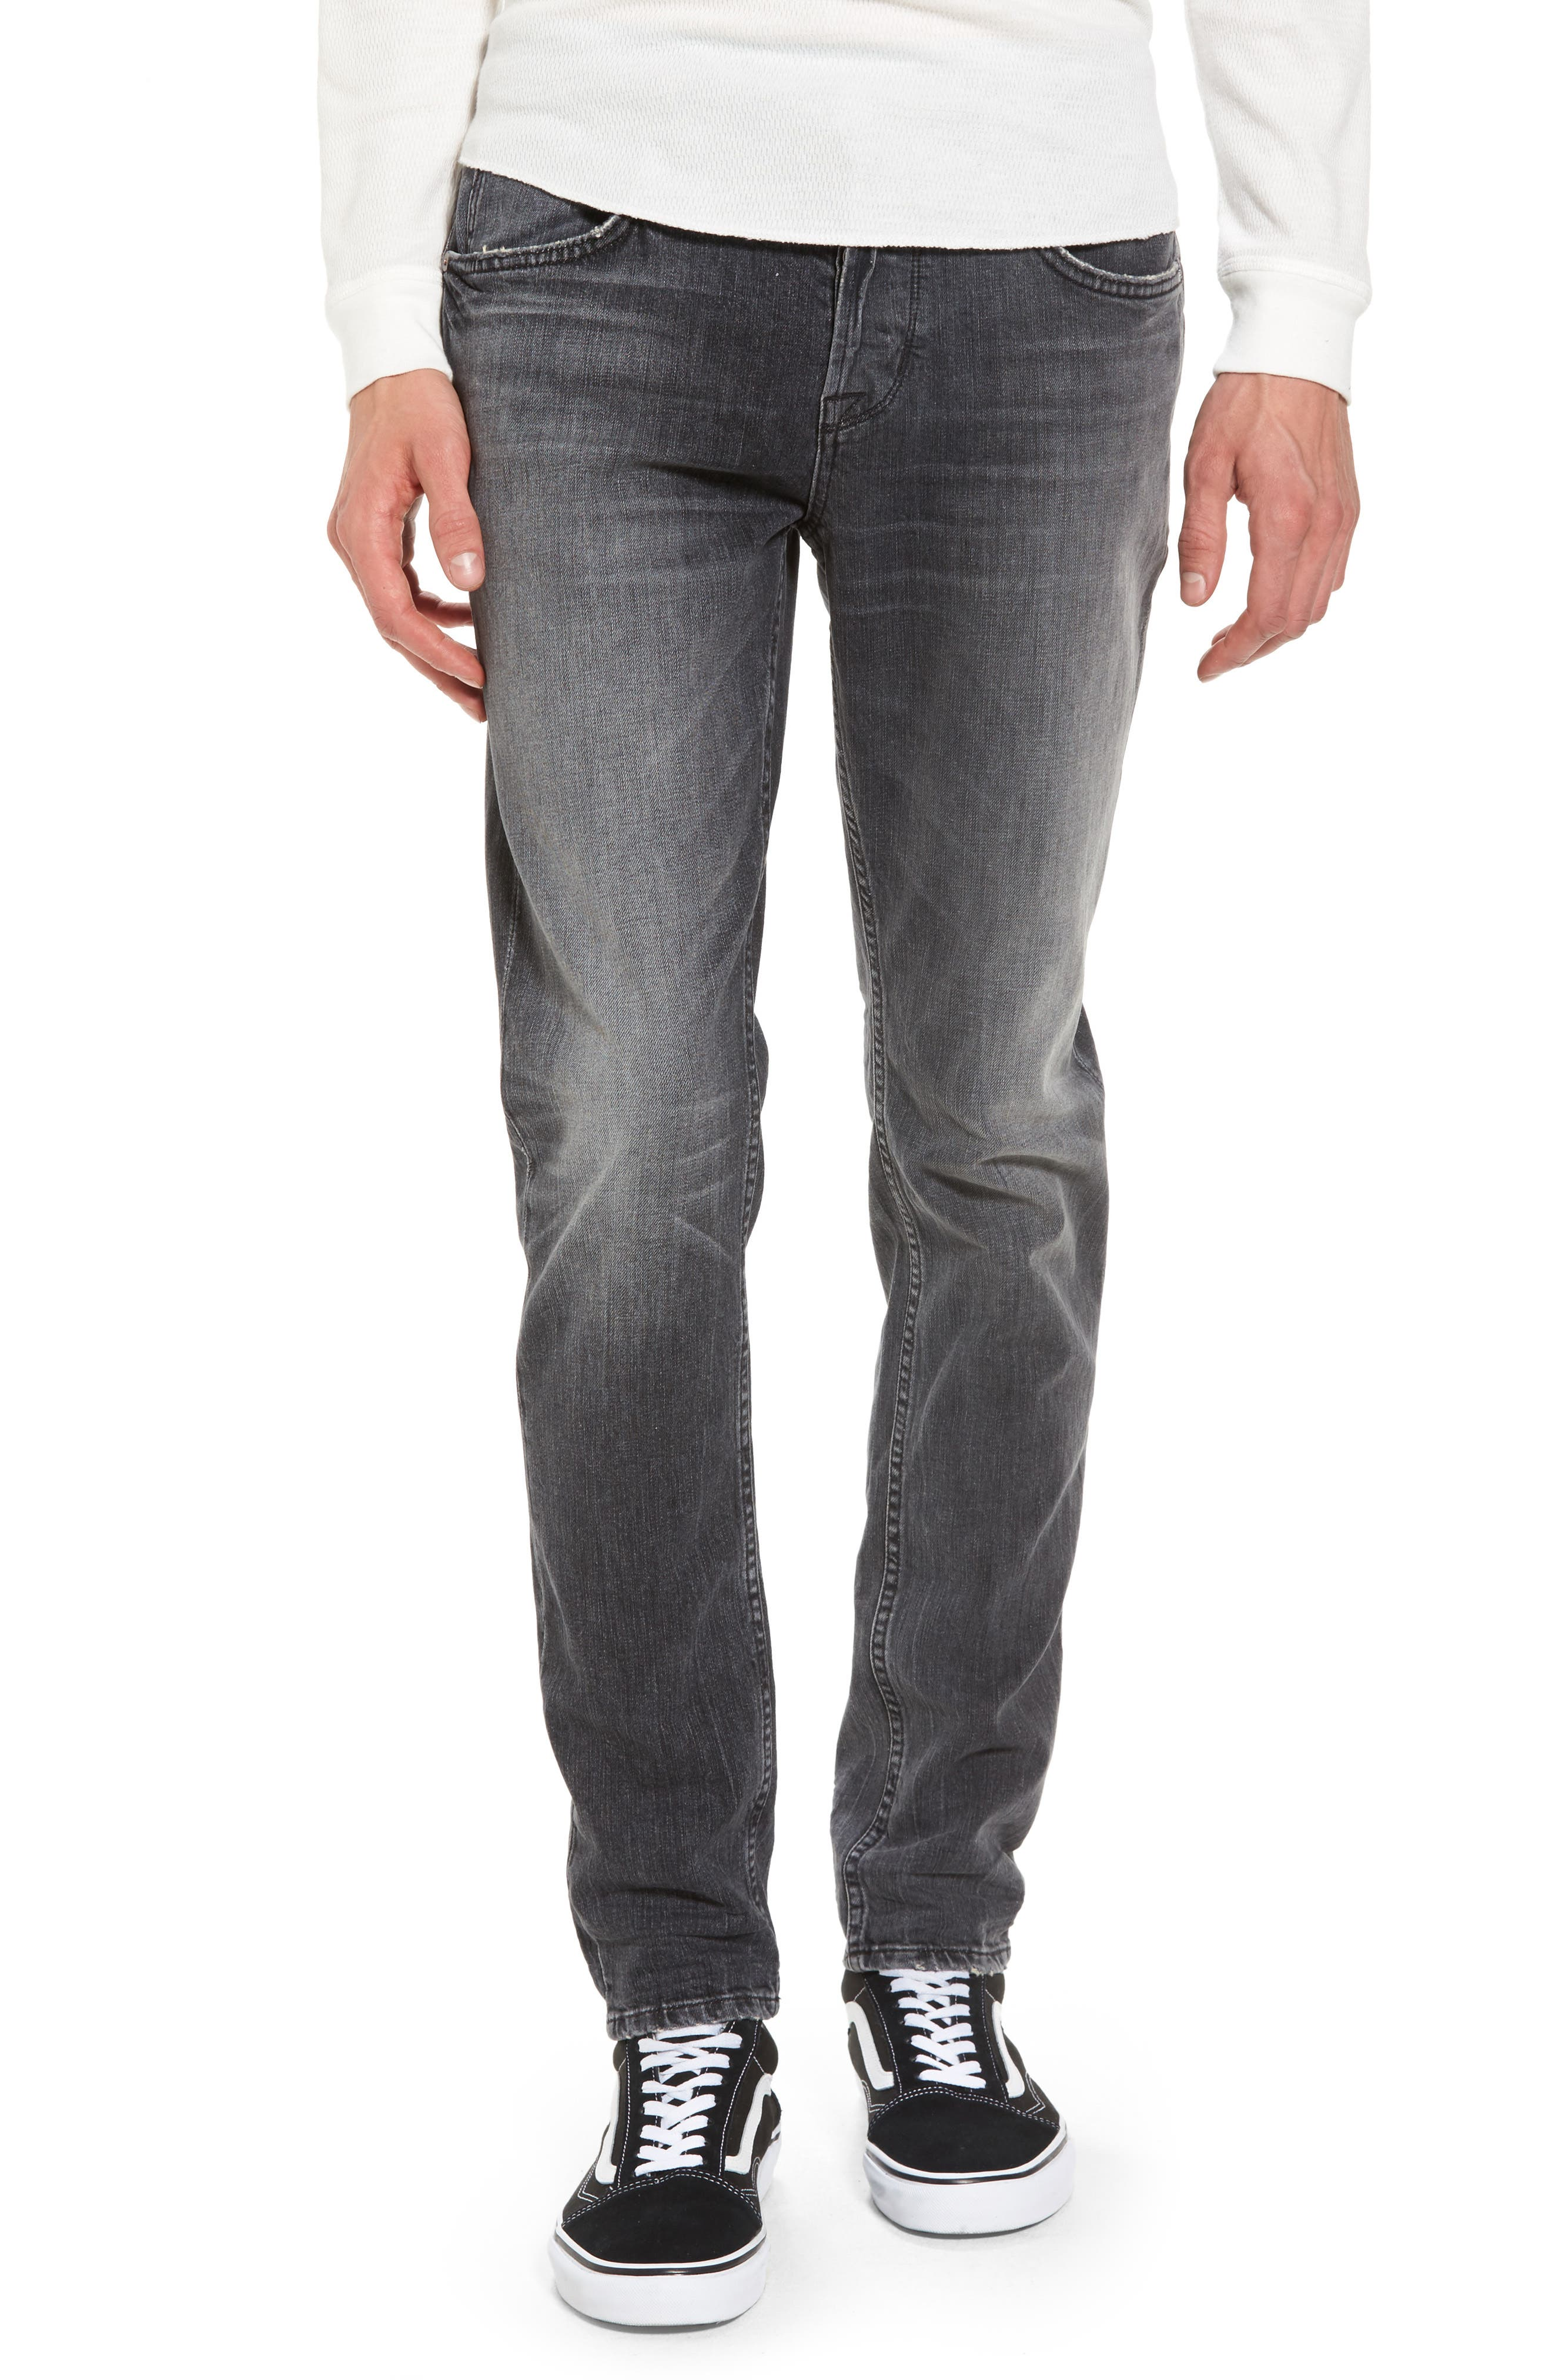 Alternate Image 1 Selected - Hudson Jeans Axl Skinny Fit Jeans (Venture)